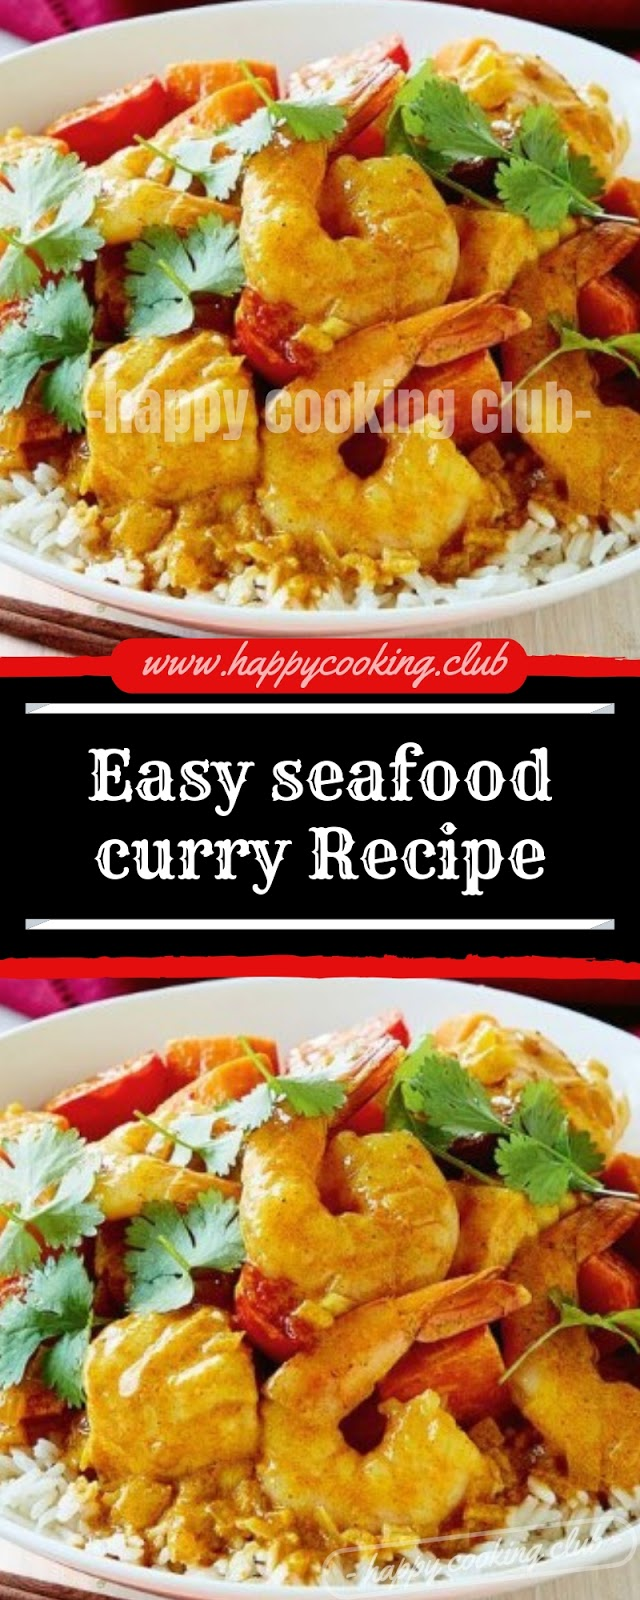 Easy seafood curry Recipe